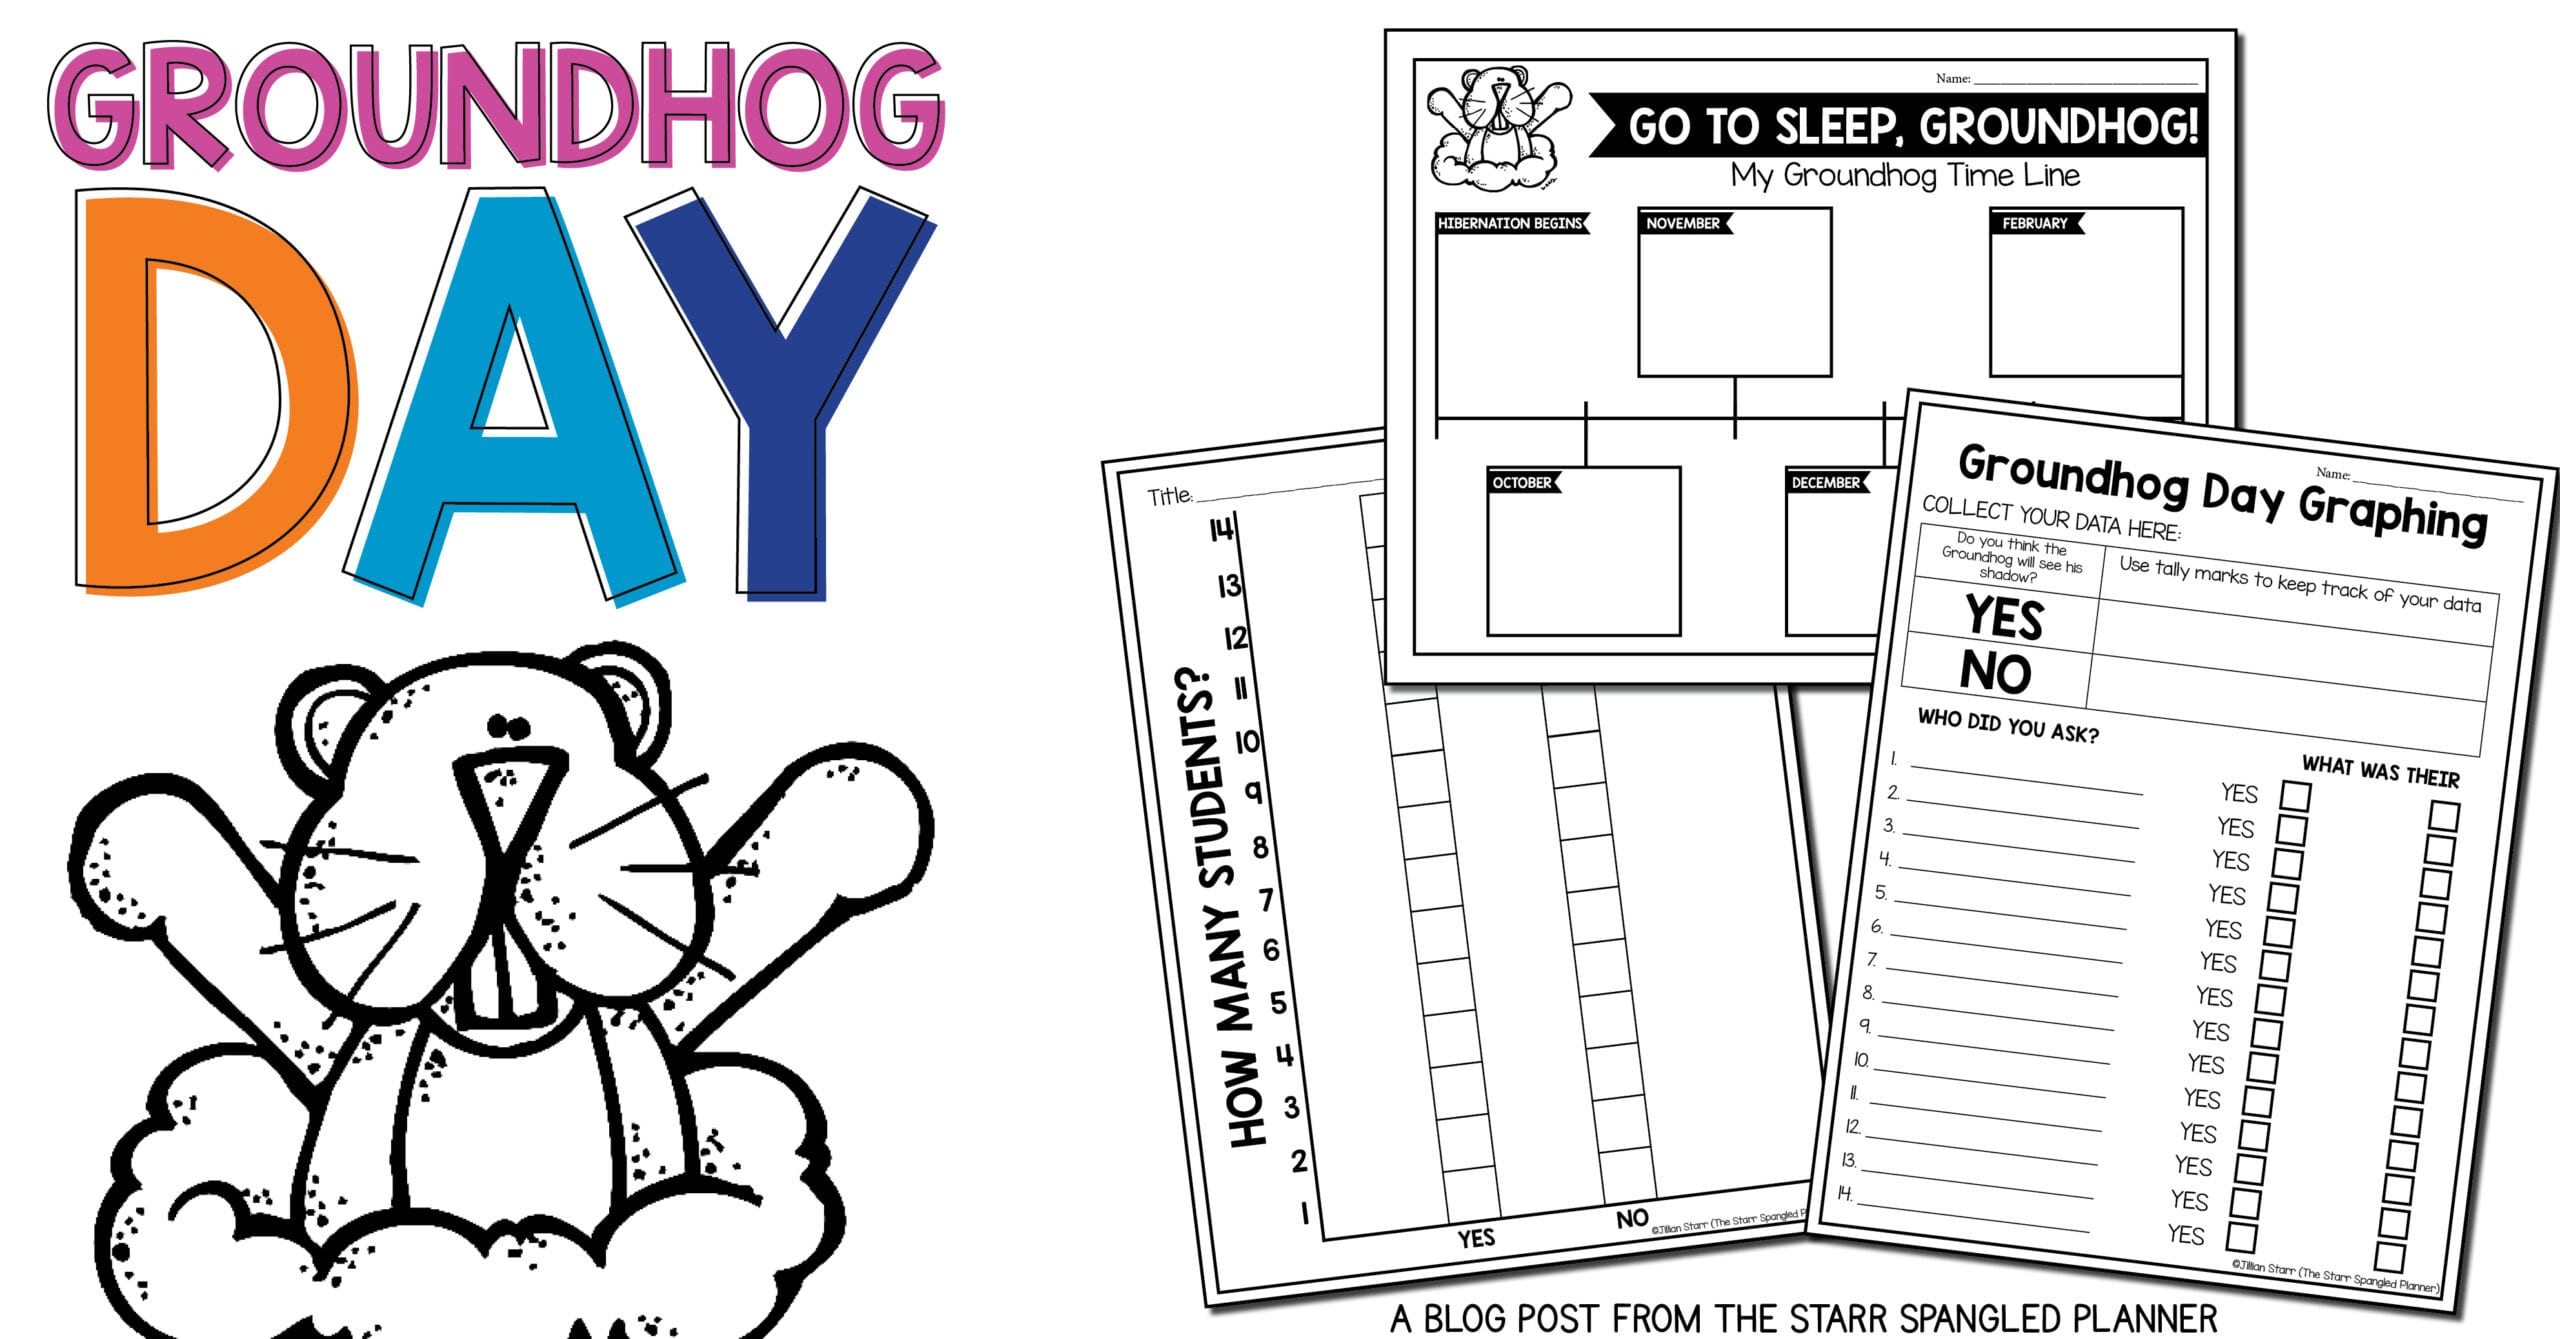 Groundhog Day Free Activities- Go Back To Bed Groundhog